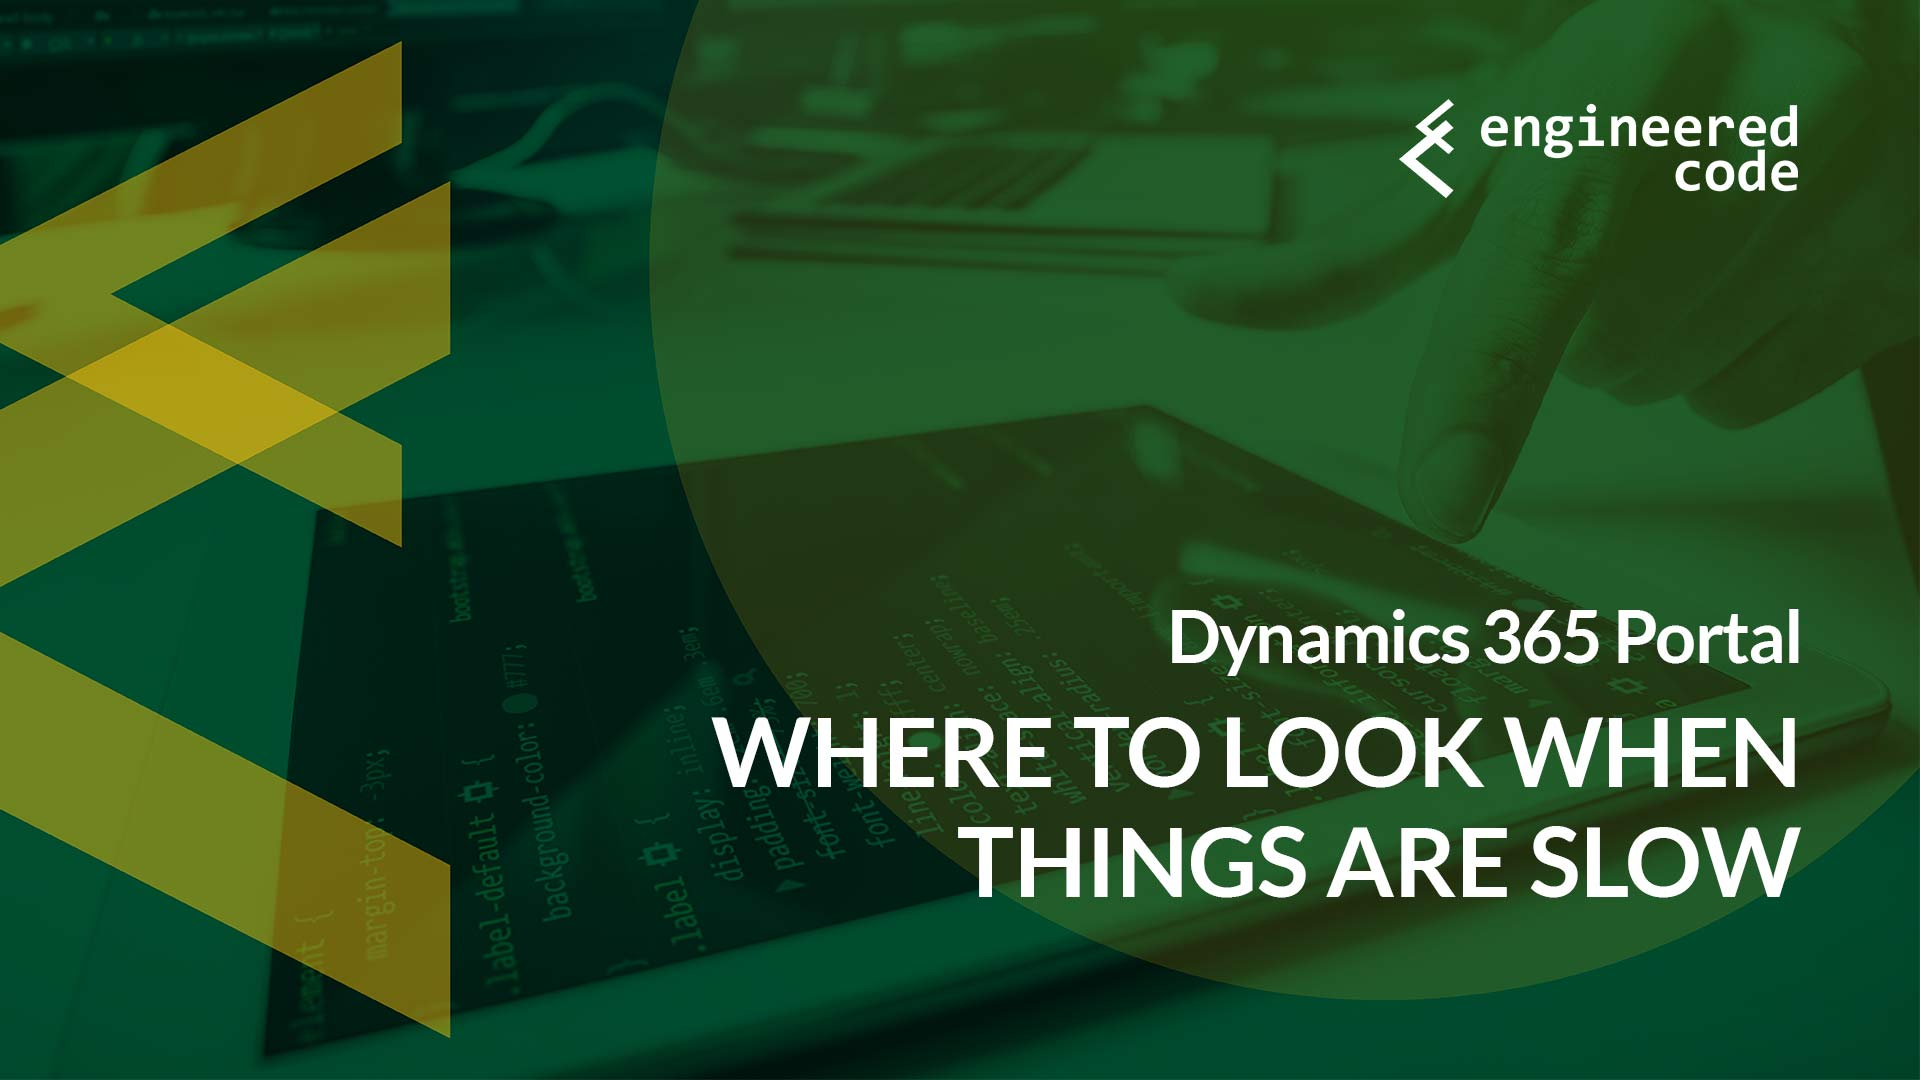 Dynamics 365 Portal: Where to Look When Things Are Slow - Microsoft